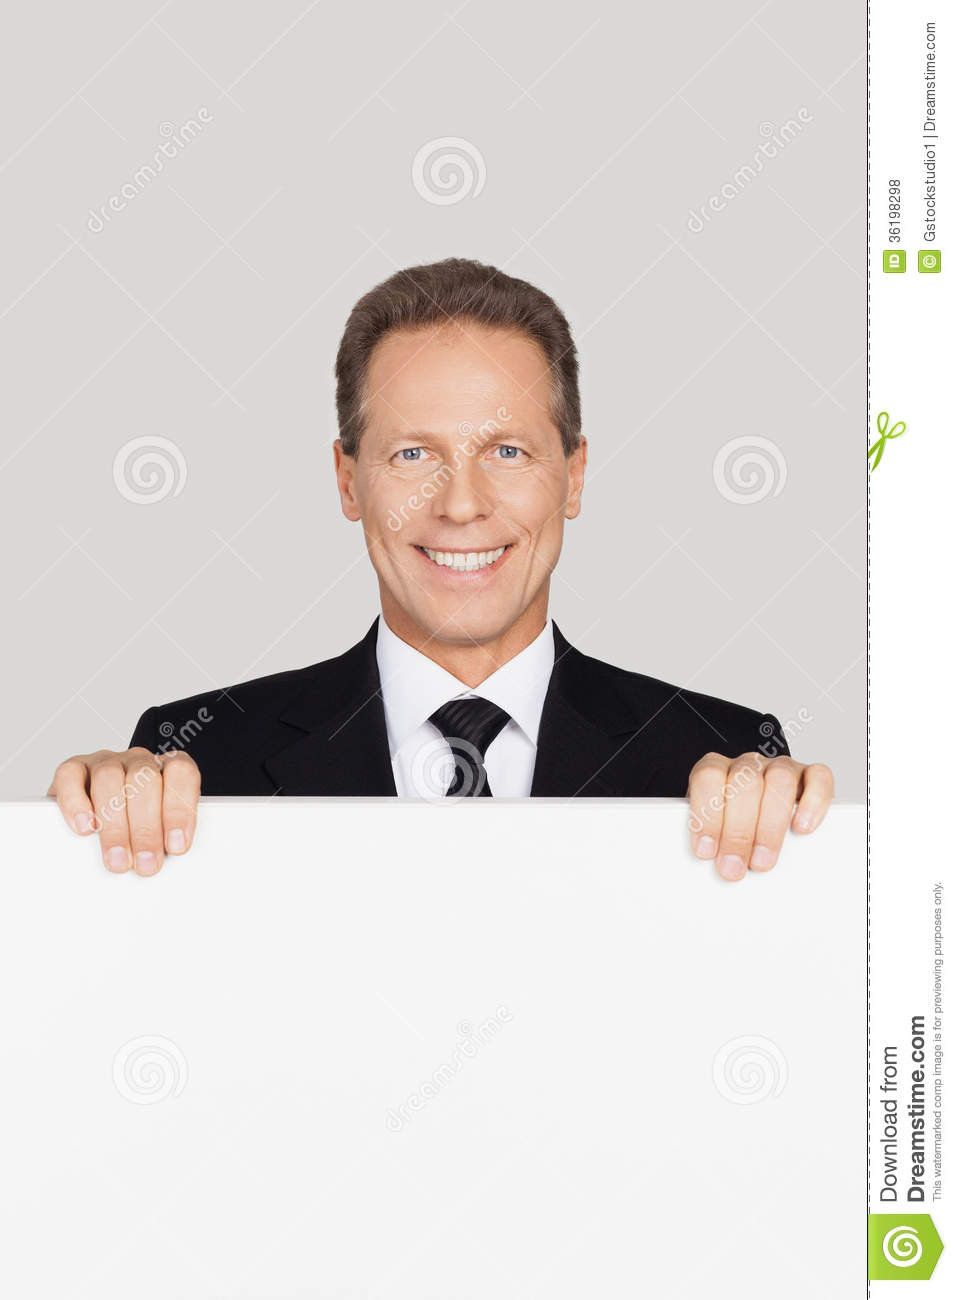 Holding Space For Your Text. Royalty Free Stock Photos ...